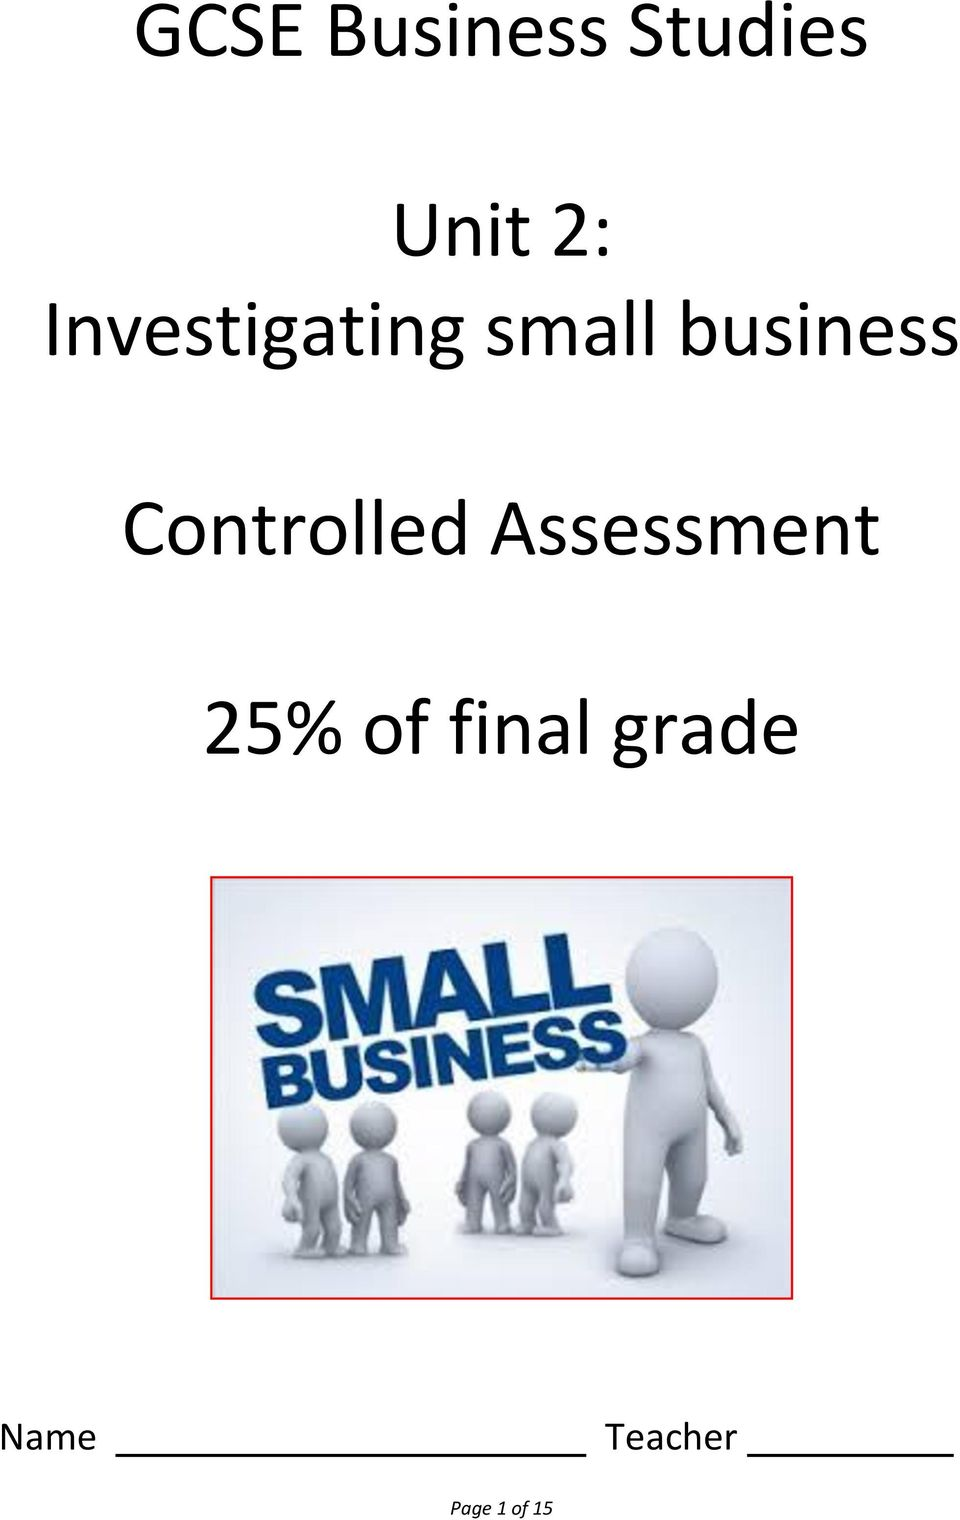 Controlled Assessment 25% of